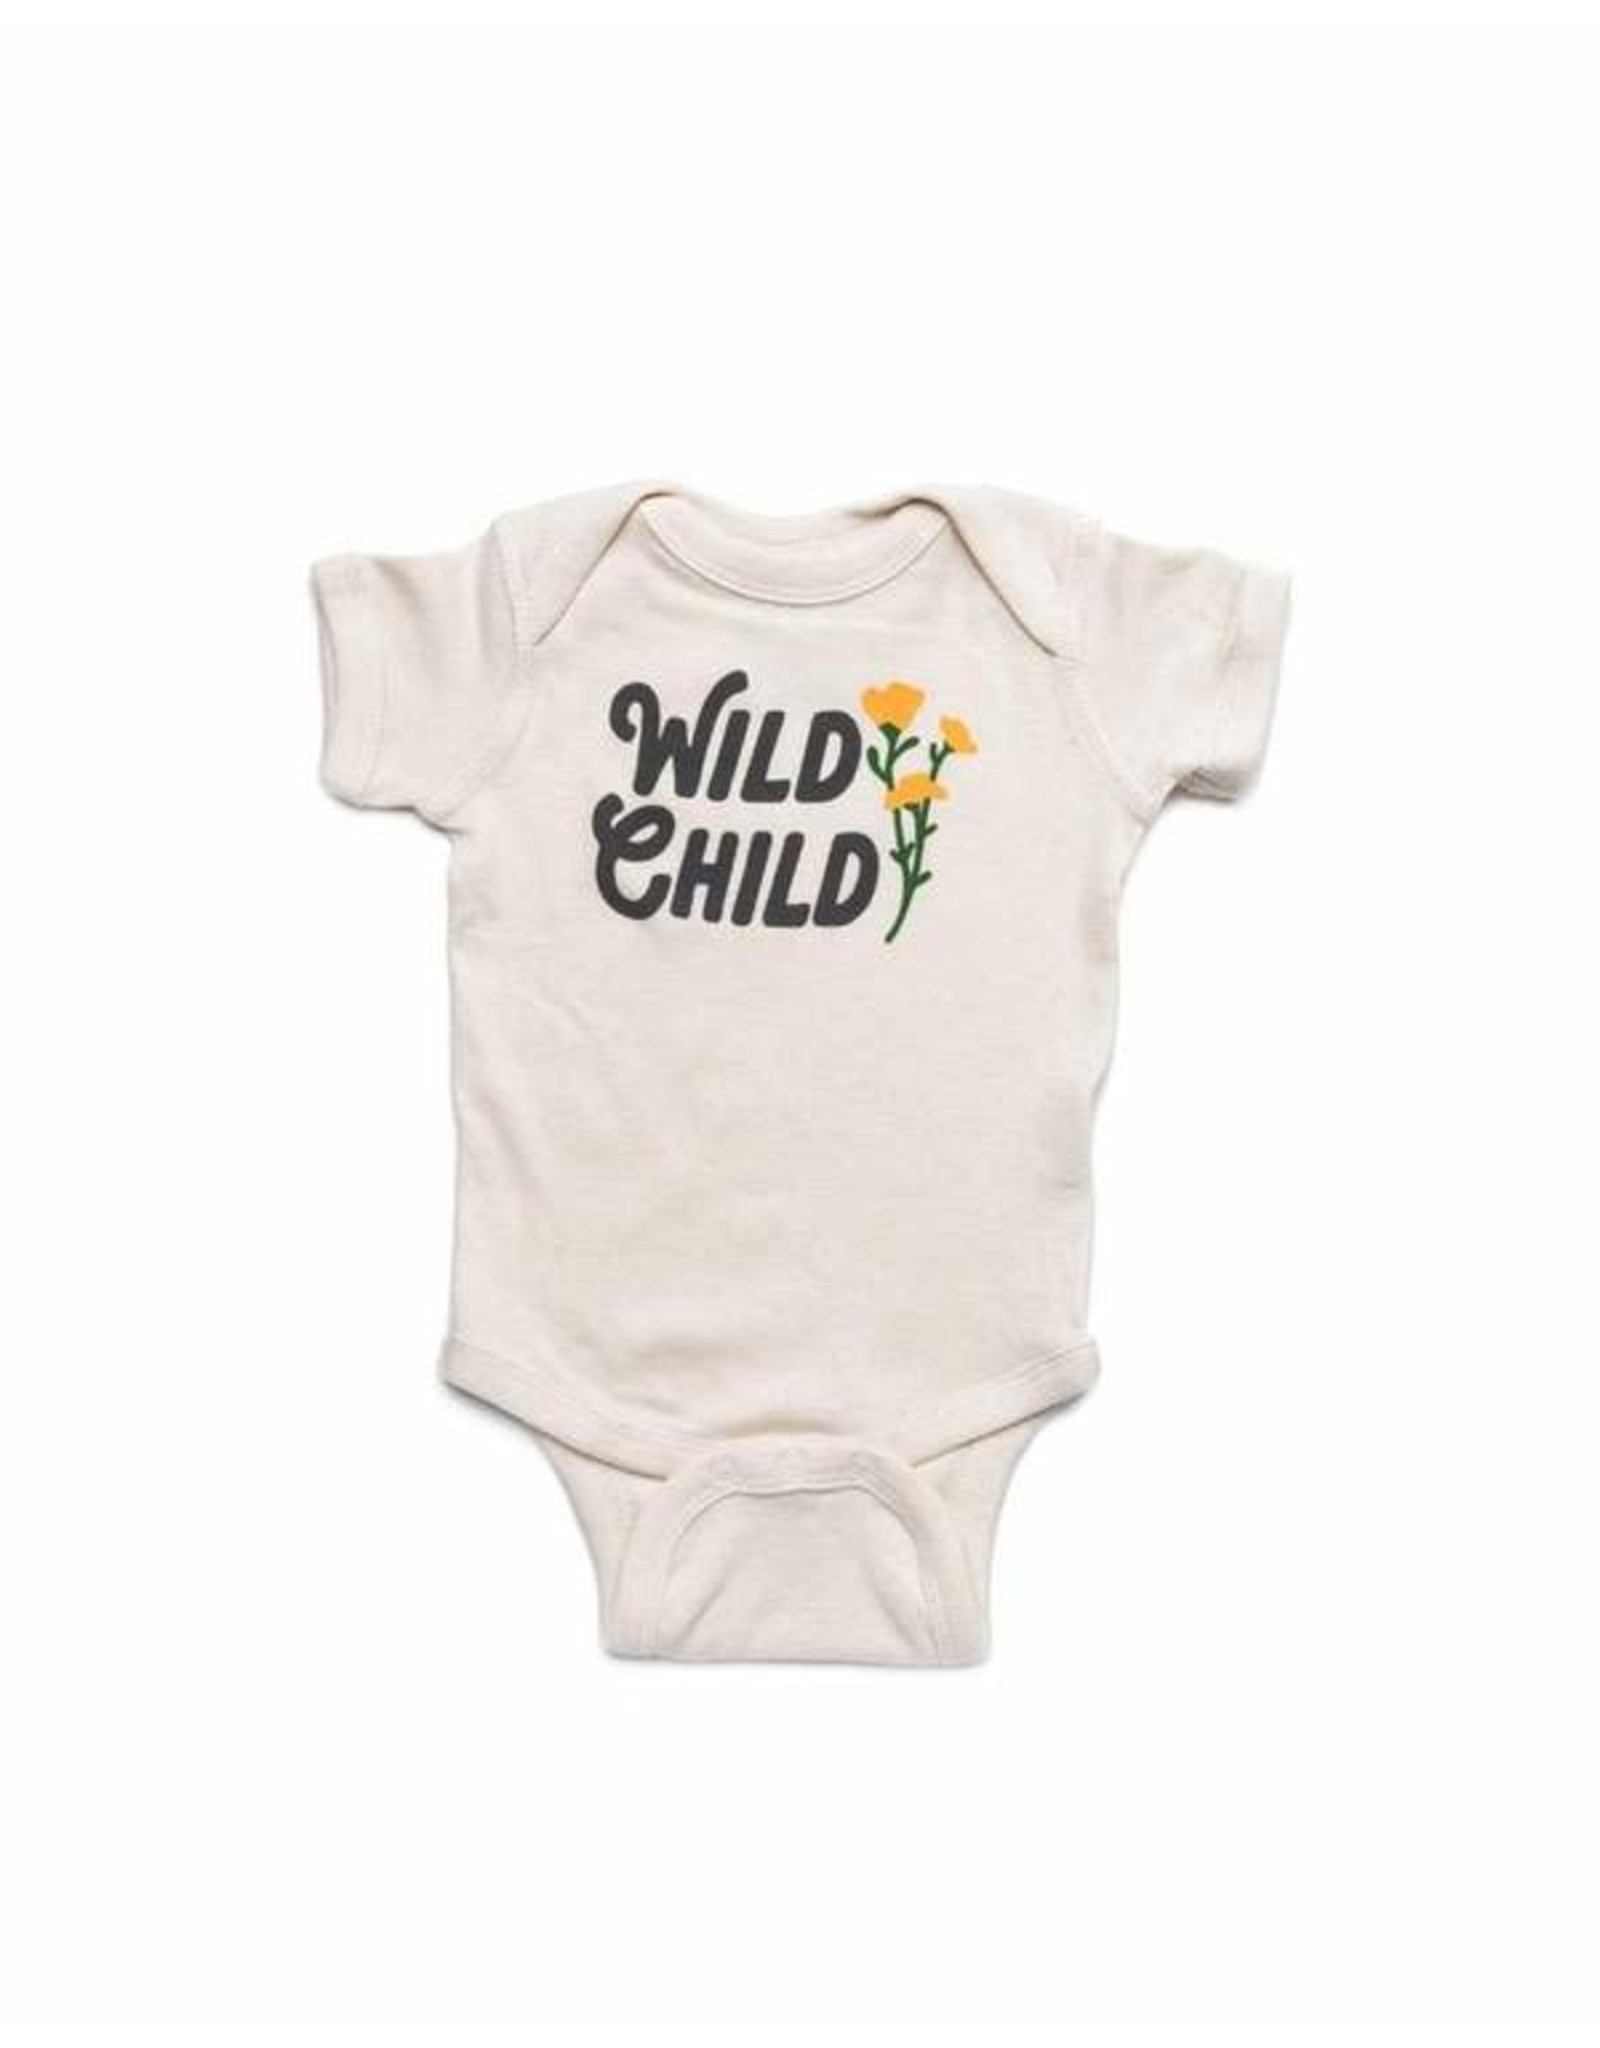 Keep Nature Wild KNW Wild Child Onesie: Natural - 12mo